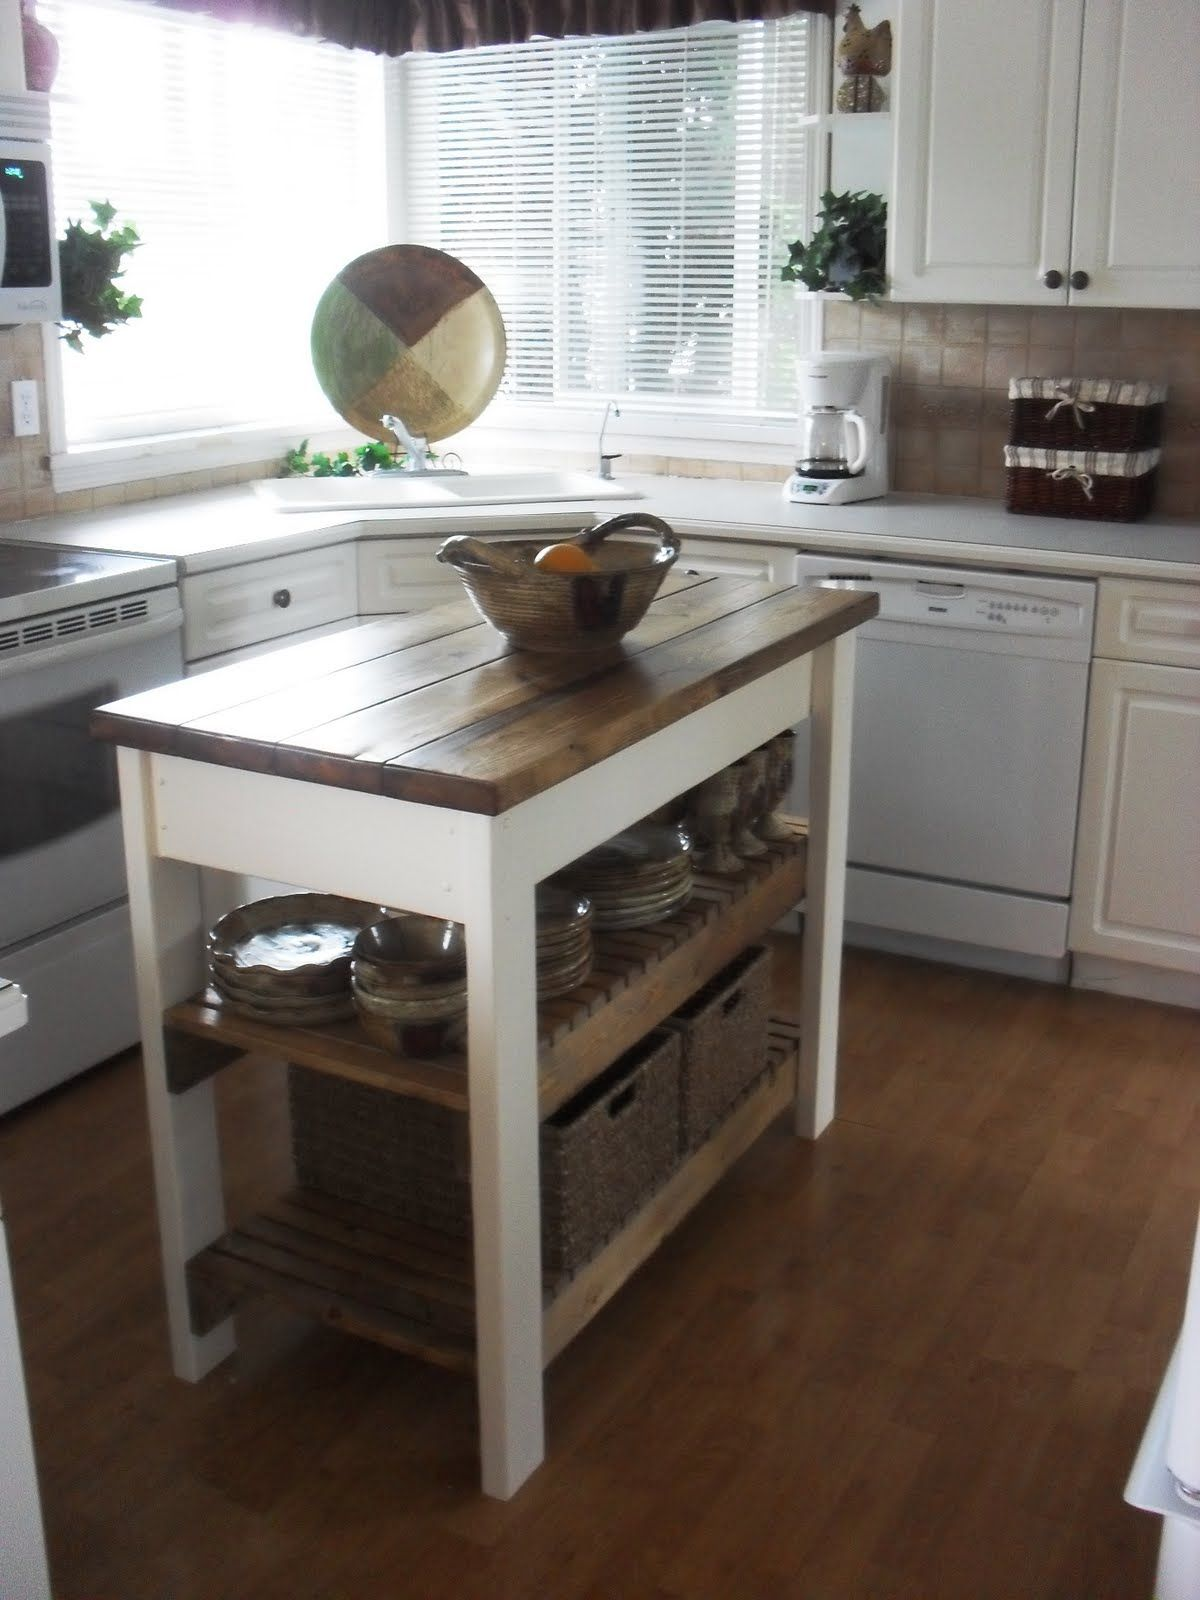 U Love The Idea Of Adding These Shelves To Our Island Humm A Crates Small Kitchen Table And 2x4 S On Top I See Diy Here